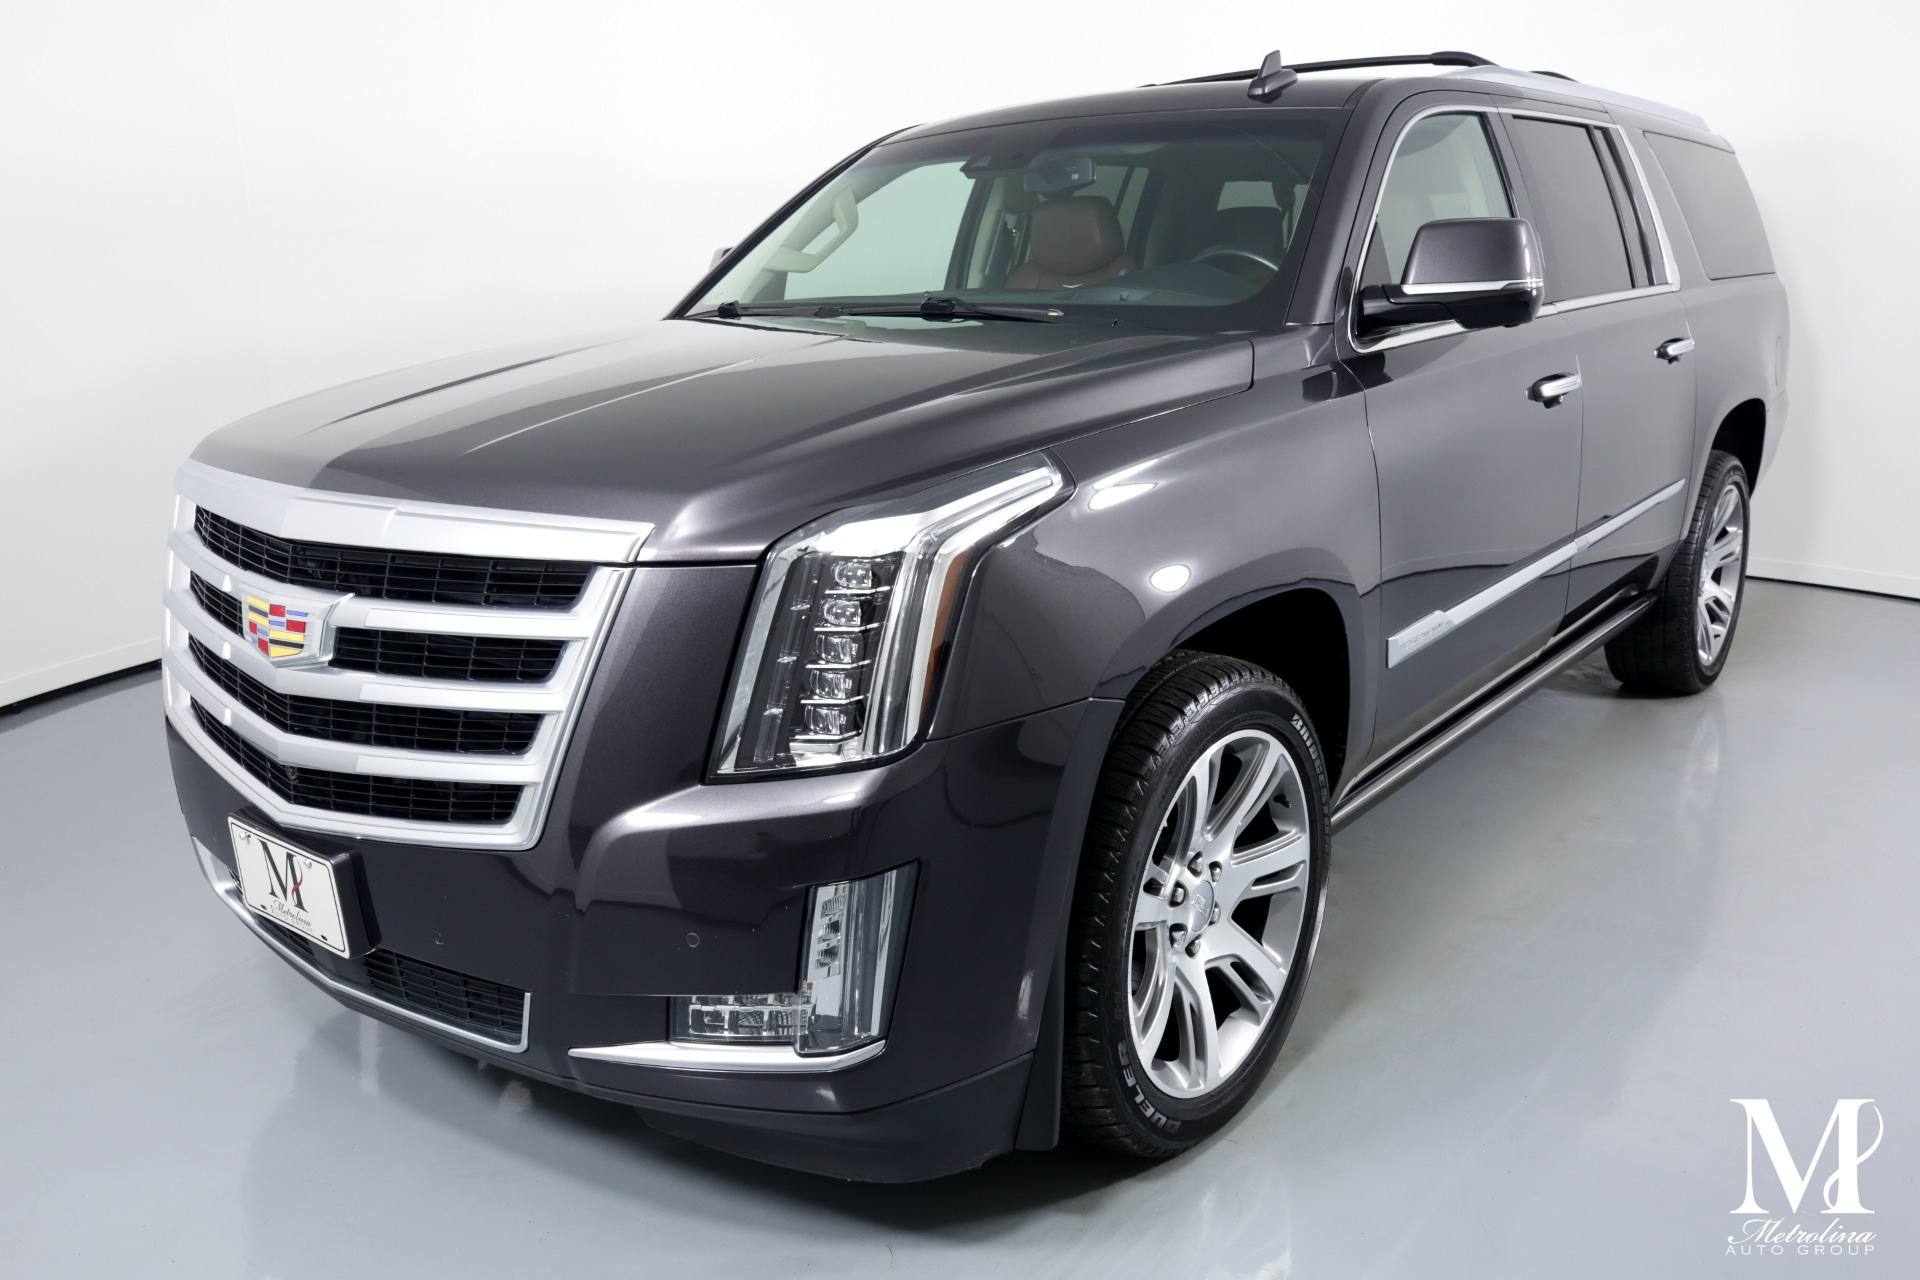 Used 2016 Cadillac Escalade ESV Premium Collection for sale $44,995 at Metrolina Auto Group in Charlotte NC 28217 - 4